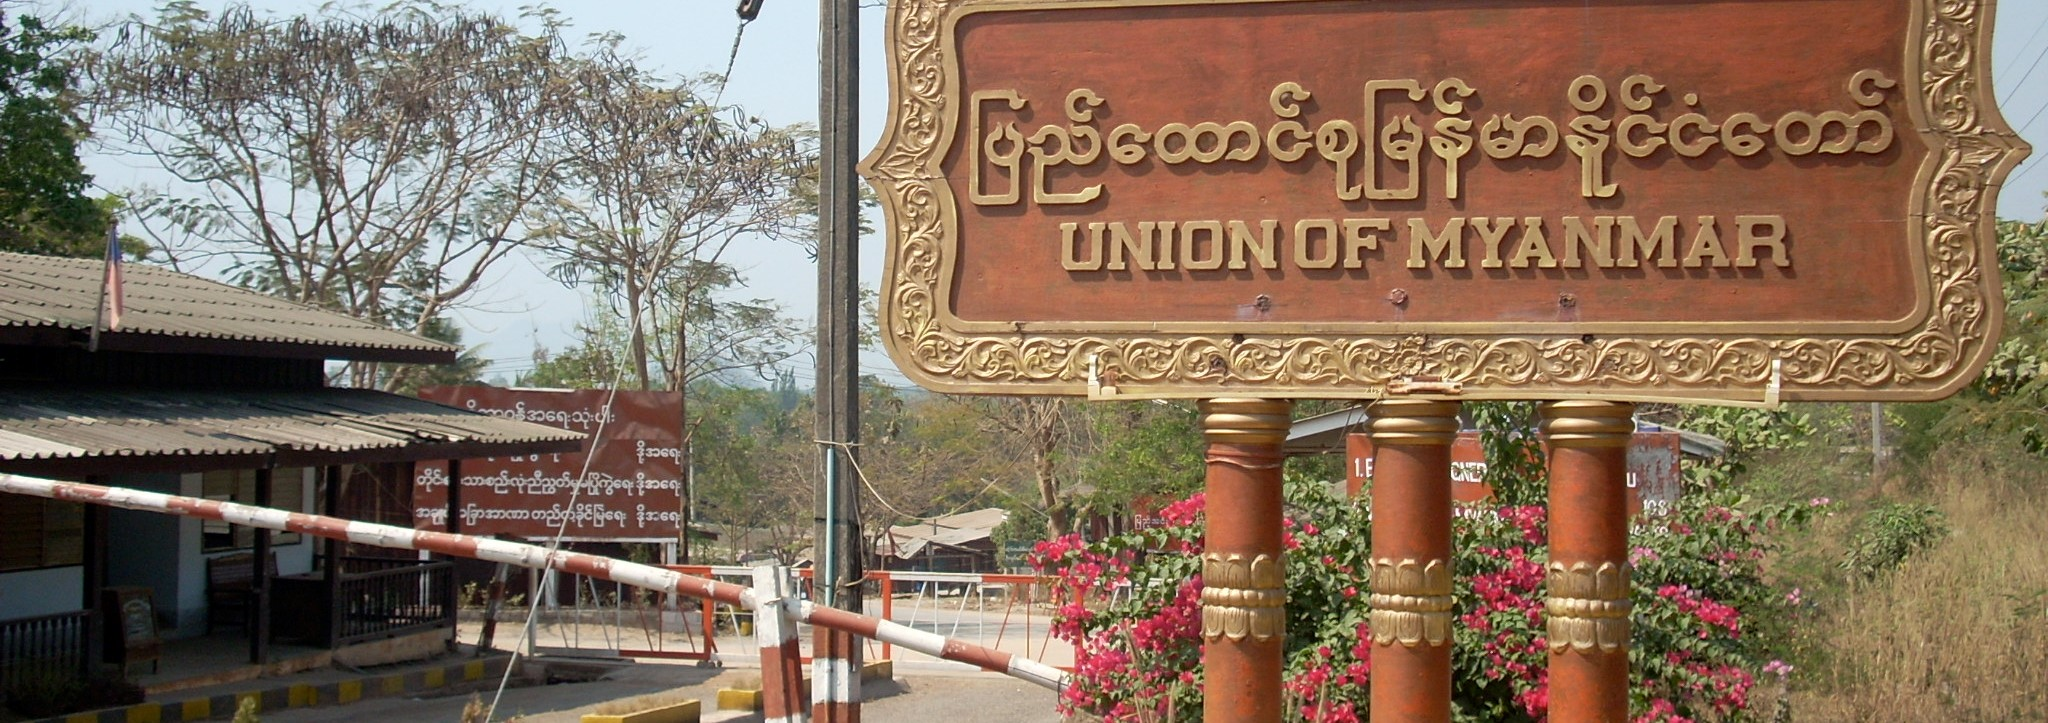 The border checkpoint between Thailand and Myanmar at Three Pagodas Pass (Photo: Flickr/ joaquin uy)